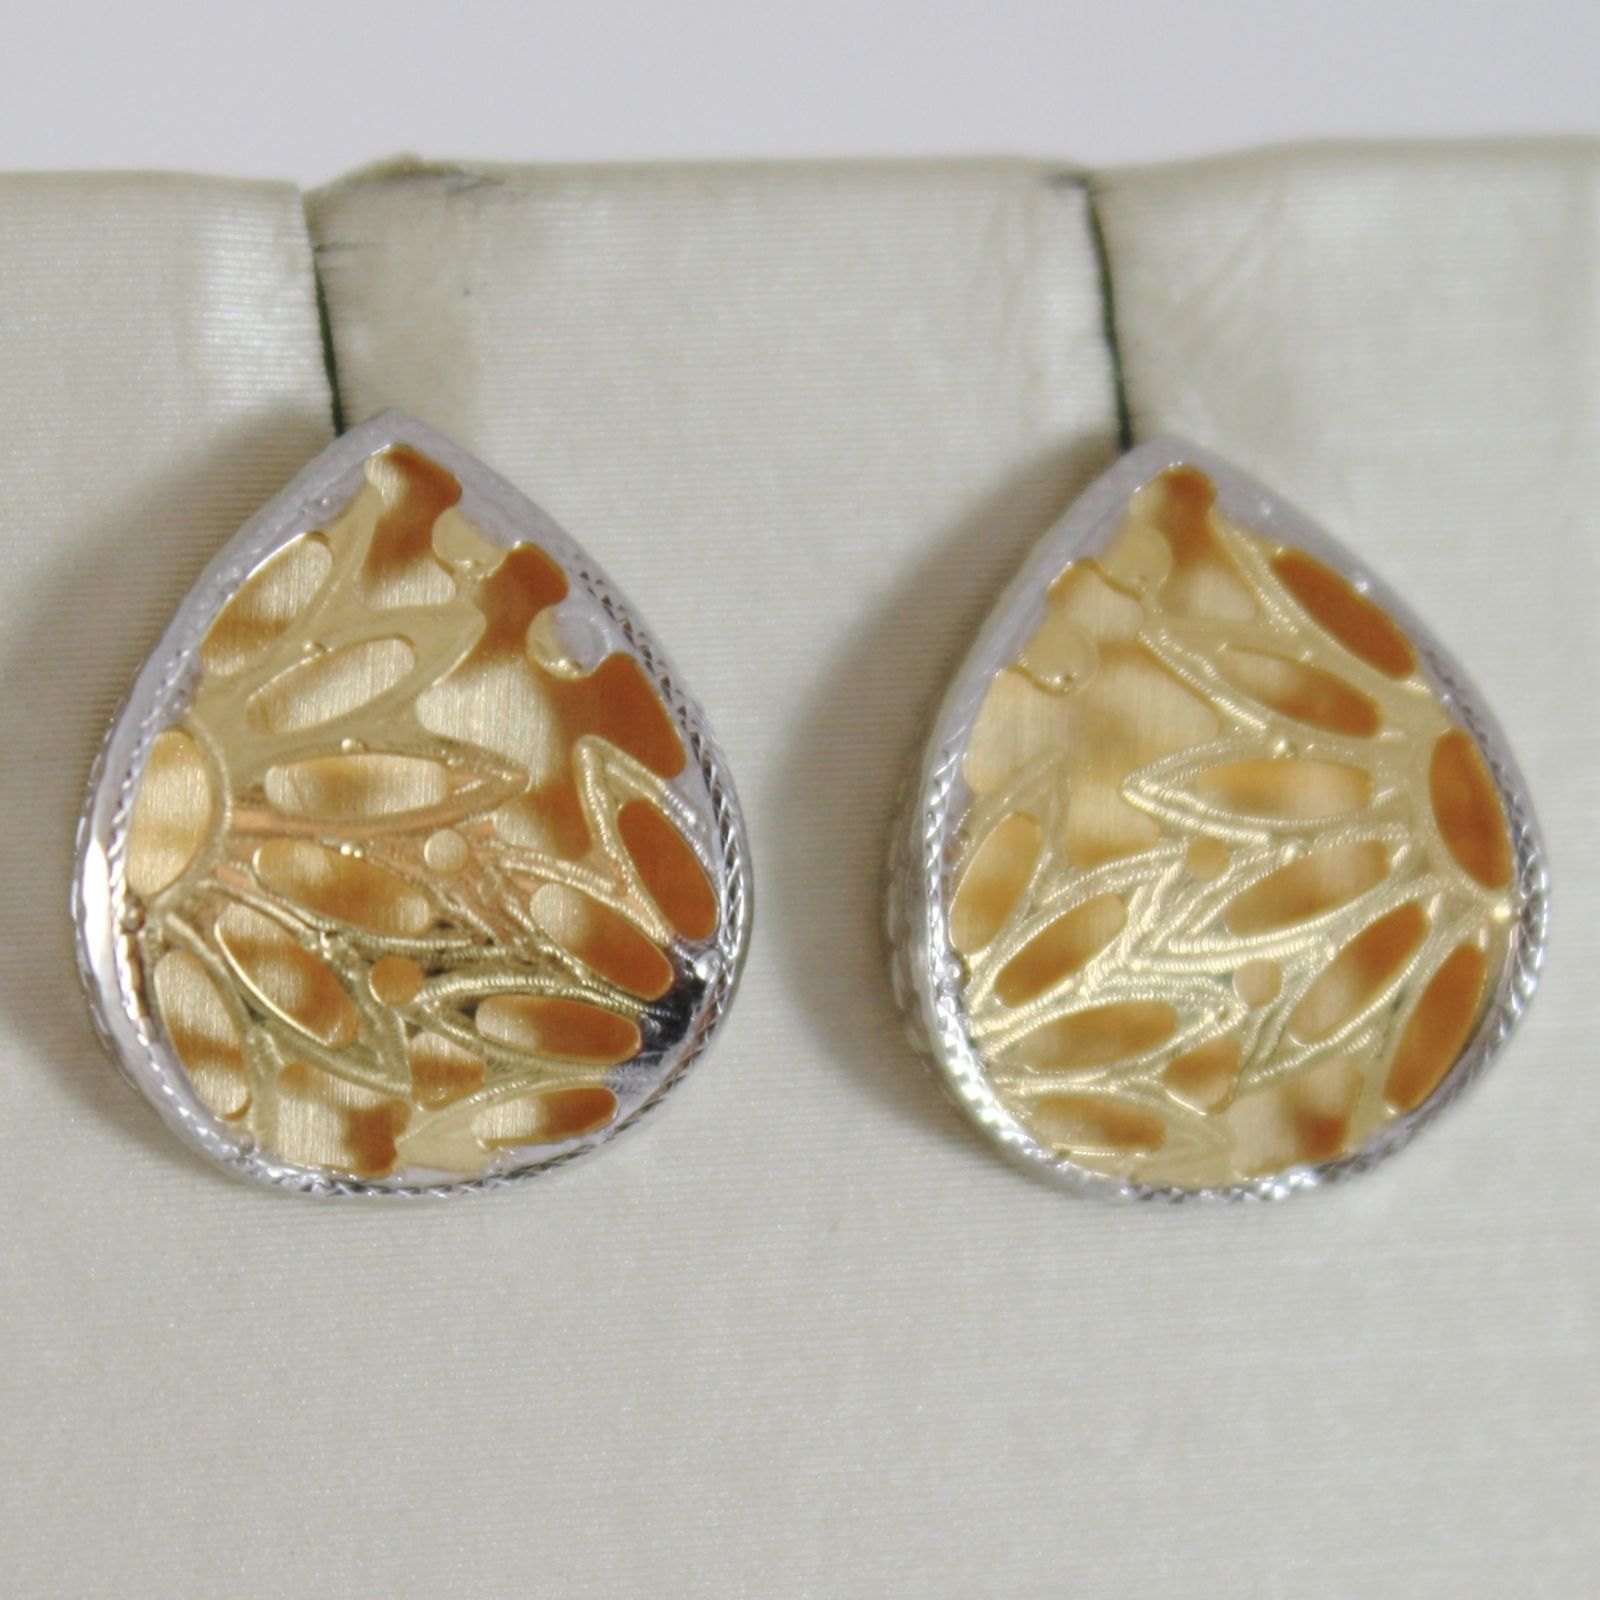 YELLOW GOLD EARRINGS WHITE 750 18K, DROP WITH FLOWERS, SATIN, DOUBLE LAYER